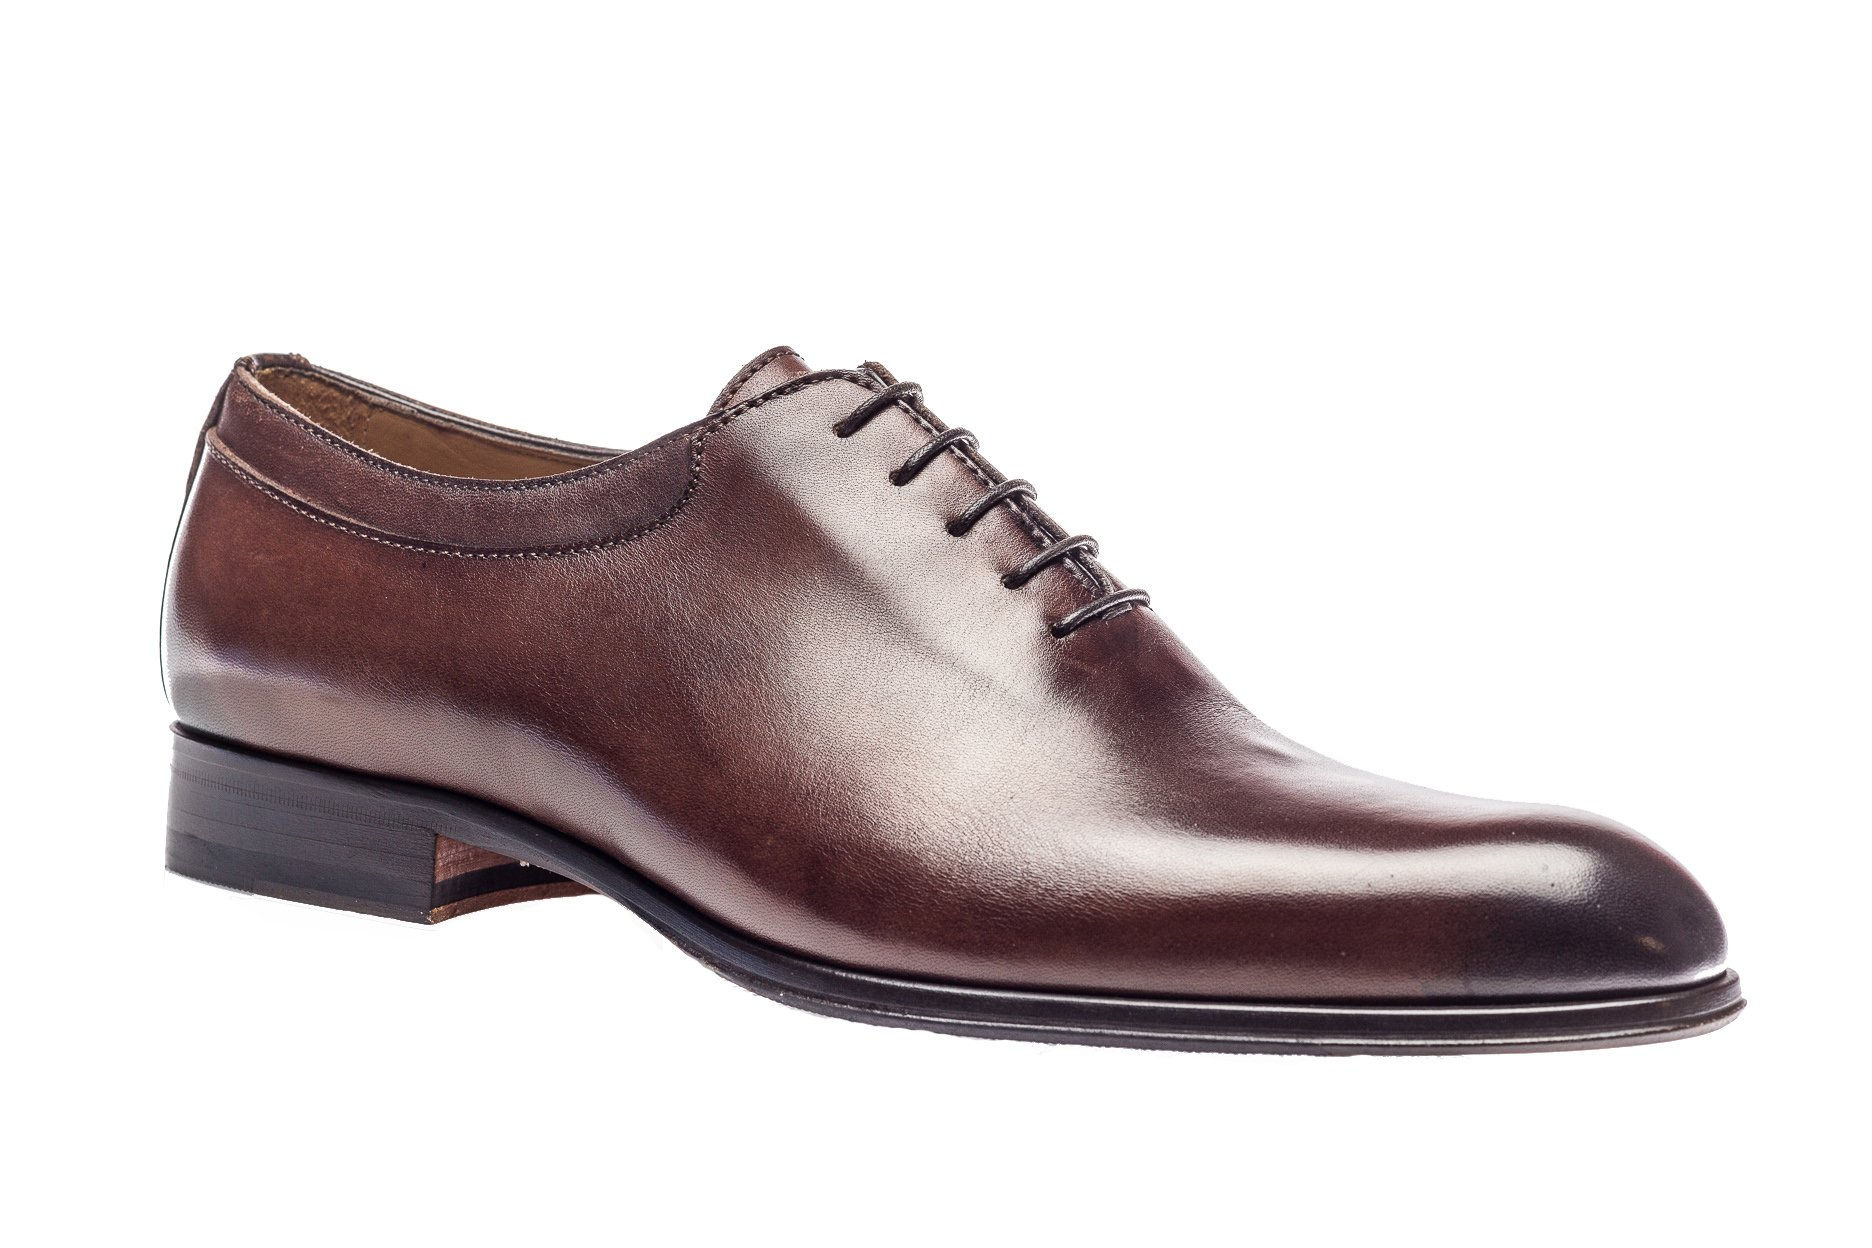 Jose Real Shoes Basoto Collection | Mens Oxford Brown Genuine Real Italian Baby Calf Leather Dress Shoe | Size EU 46